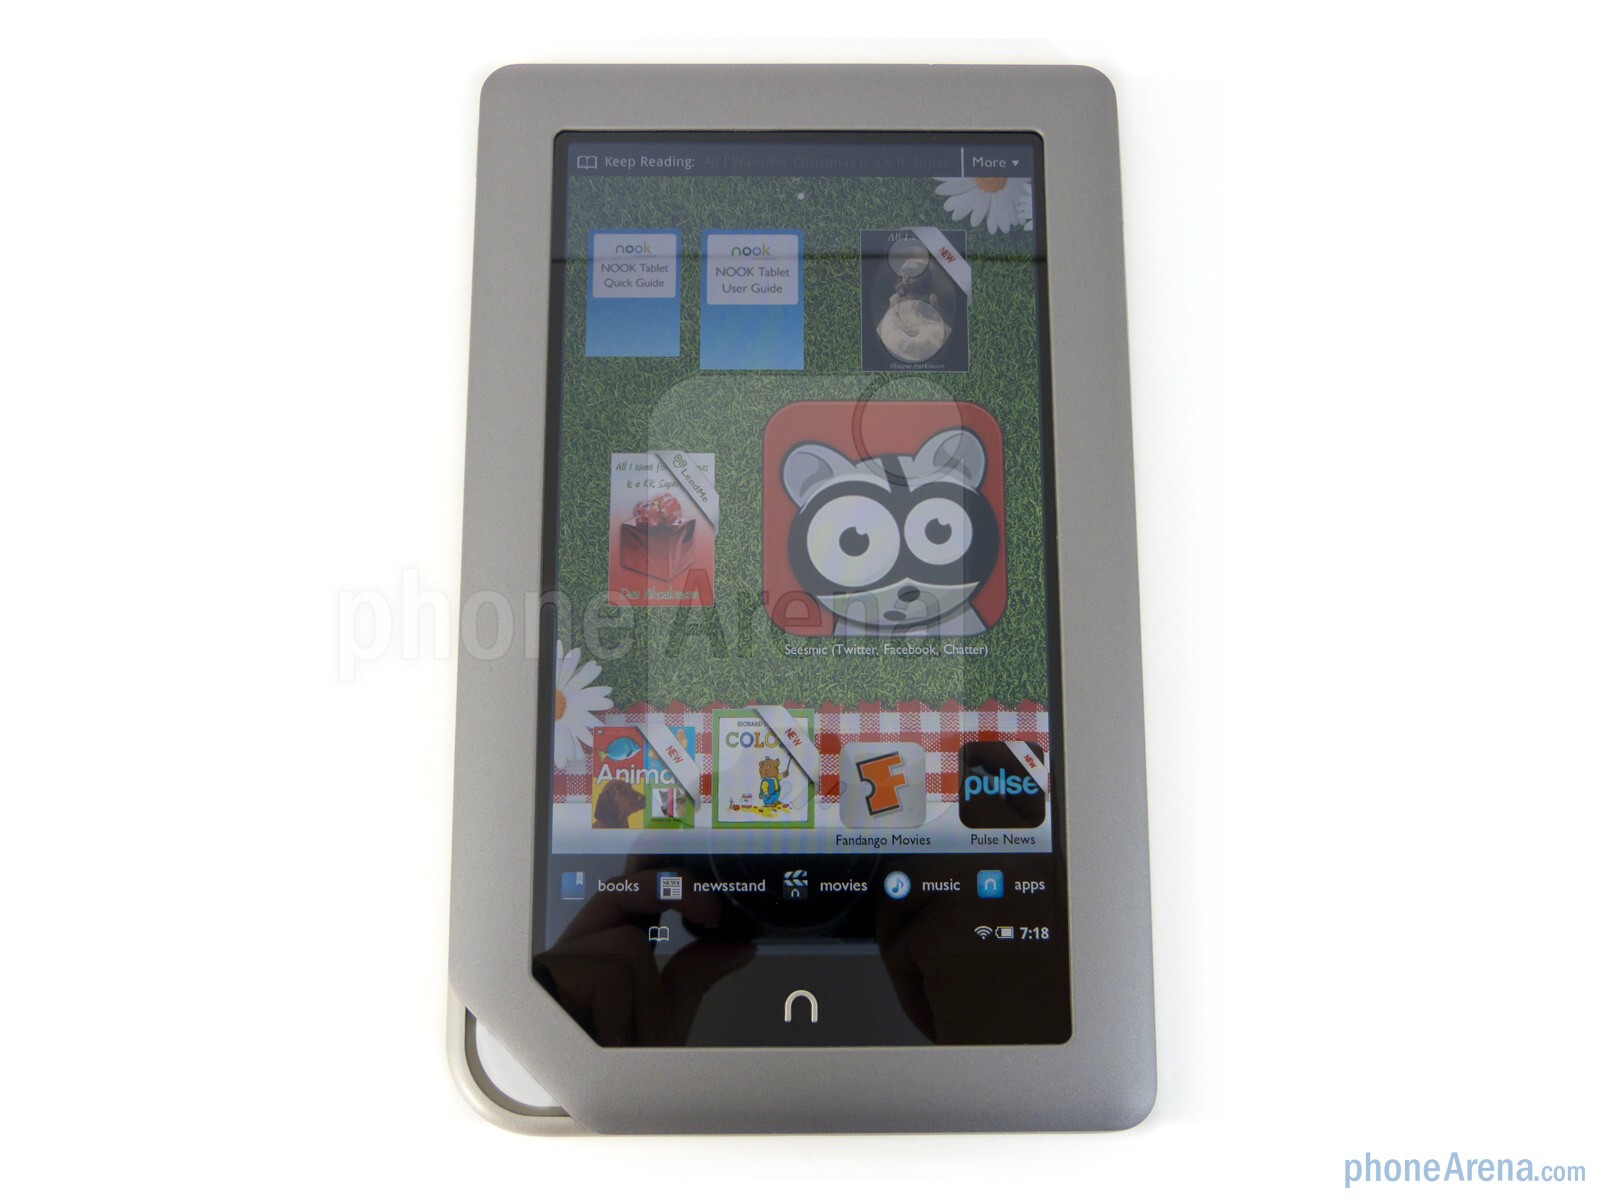 Barnes & Noble NOOK Tablet Review - Performance and Conclusion